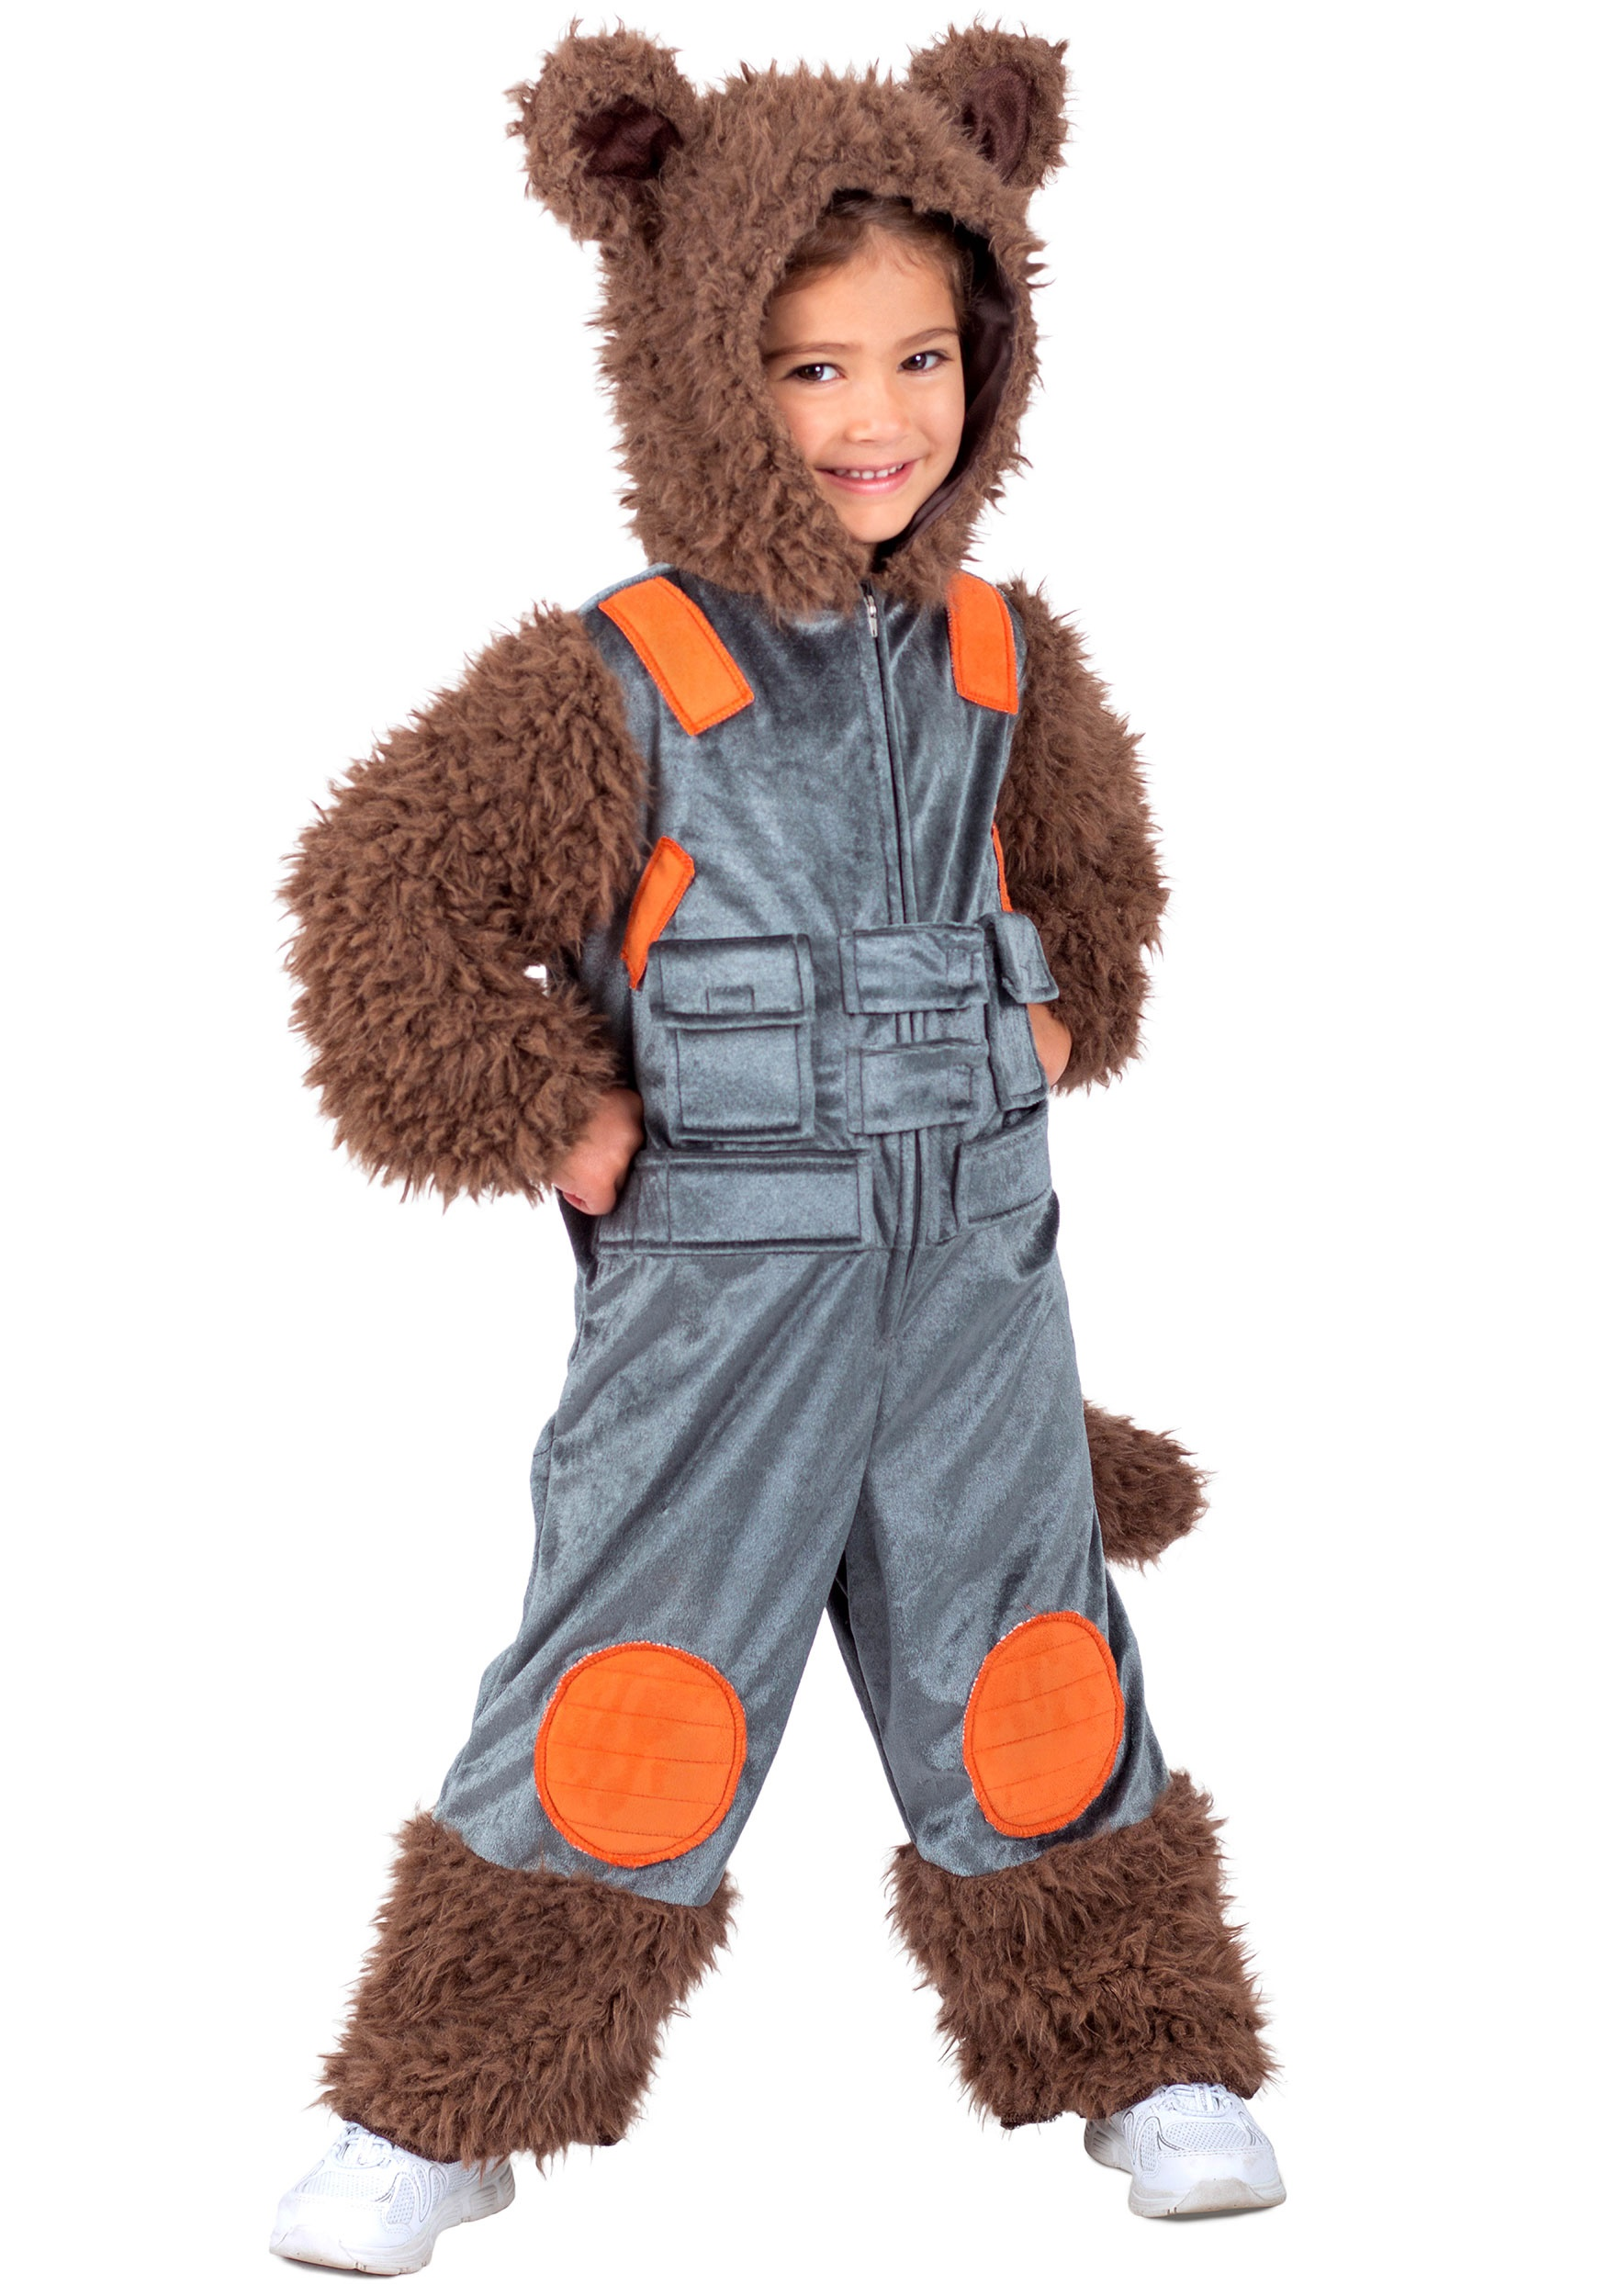 Guardians of the Galaxy Costumes - HalloweenCostumes.com